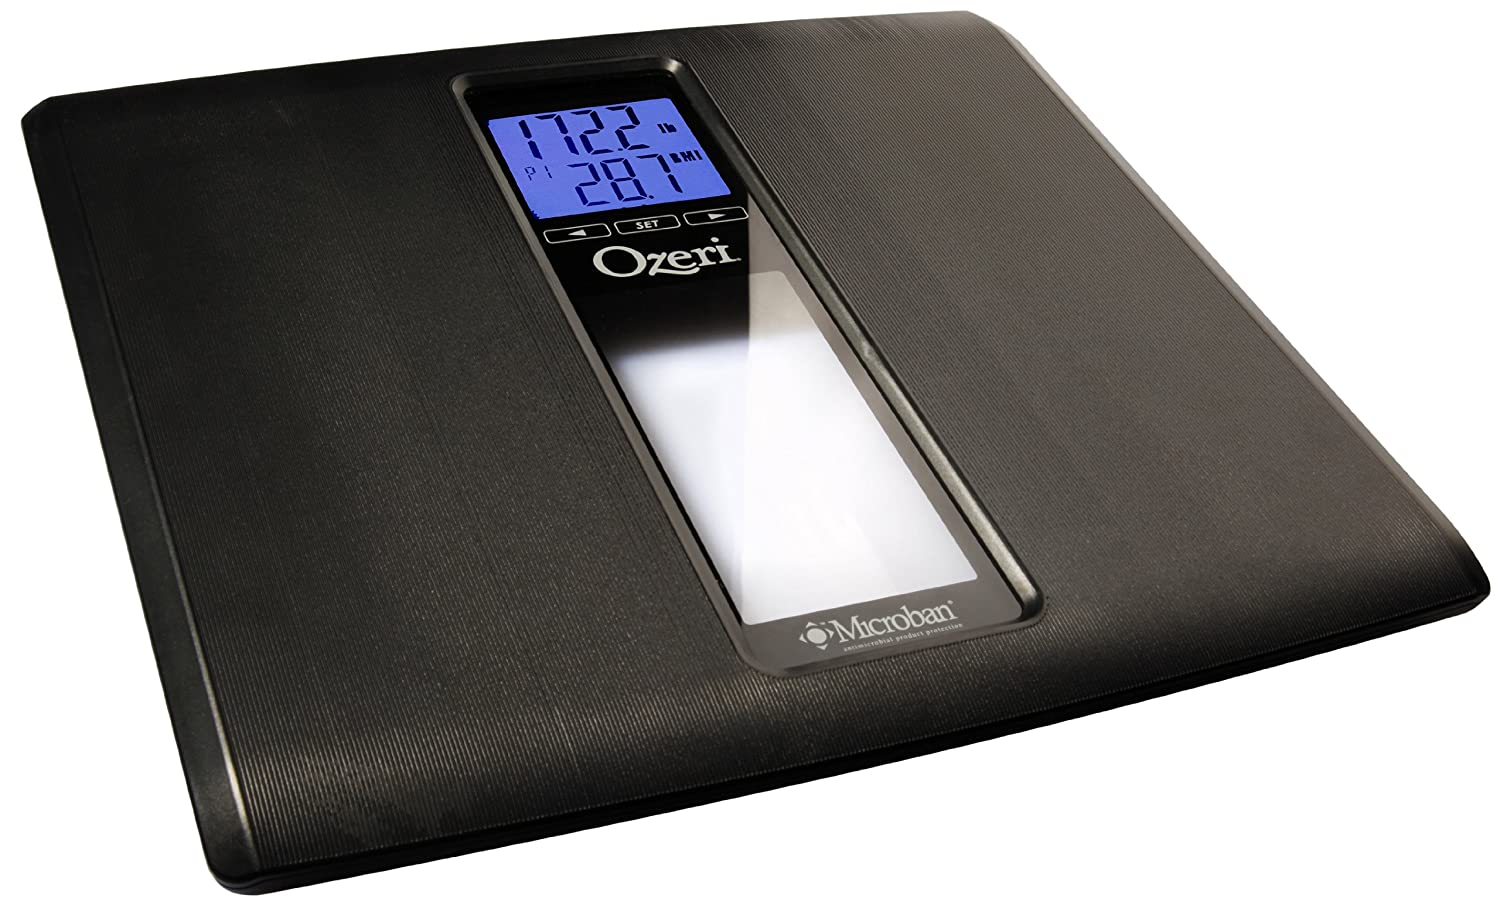 Amazon scale bathroom - Amazon Com Ozeri Zb20 Weightmaster Ii 440 Lbs Digital Bath Scale With Bmi And Weight Change Detection Black Health Personal Care